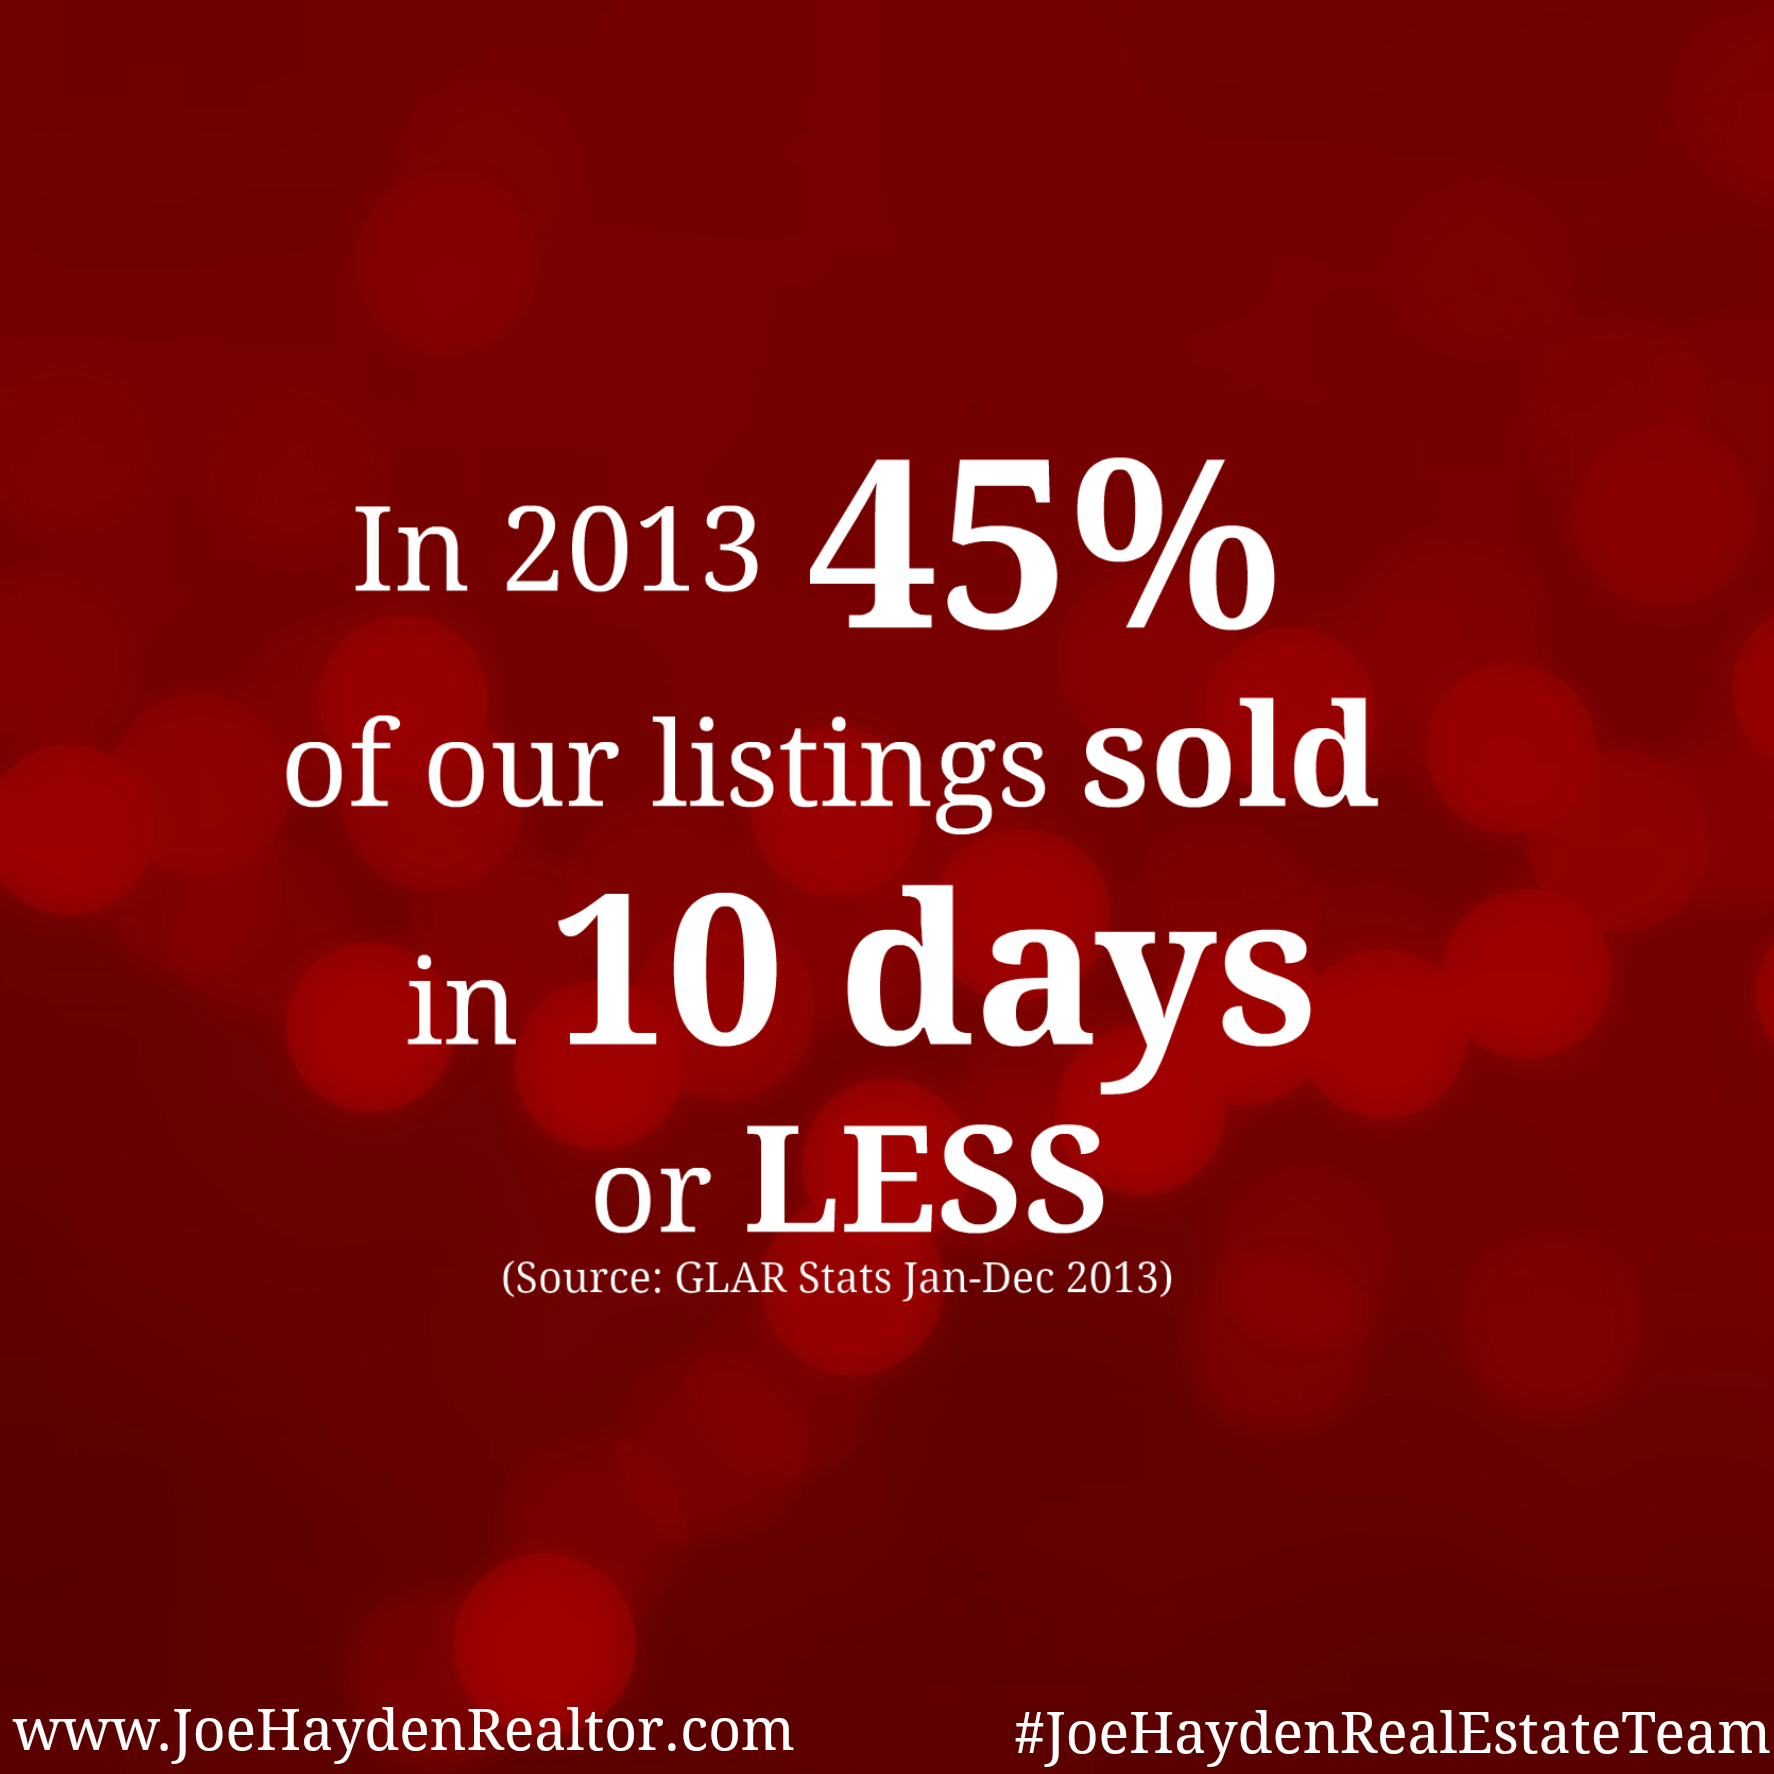 Listings Sold in 10 Days or Less